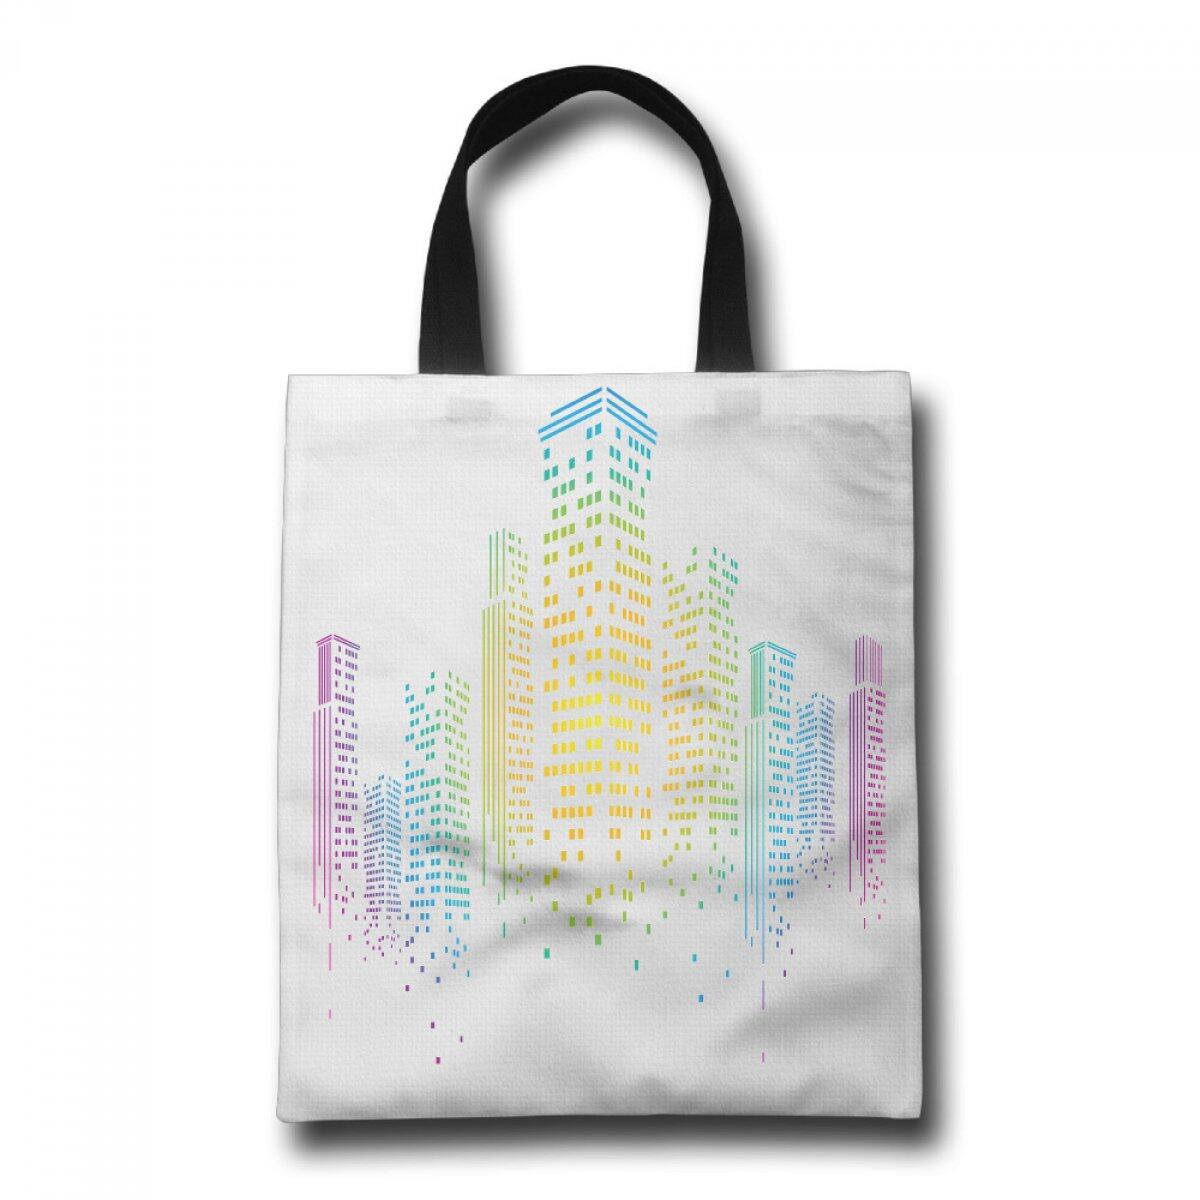 PhoRock Women Beach Tote High-Rise Building Printed Canvas Tote Bag GWJZ003 0